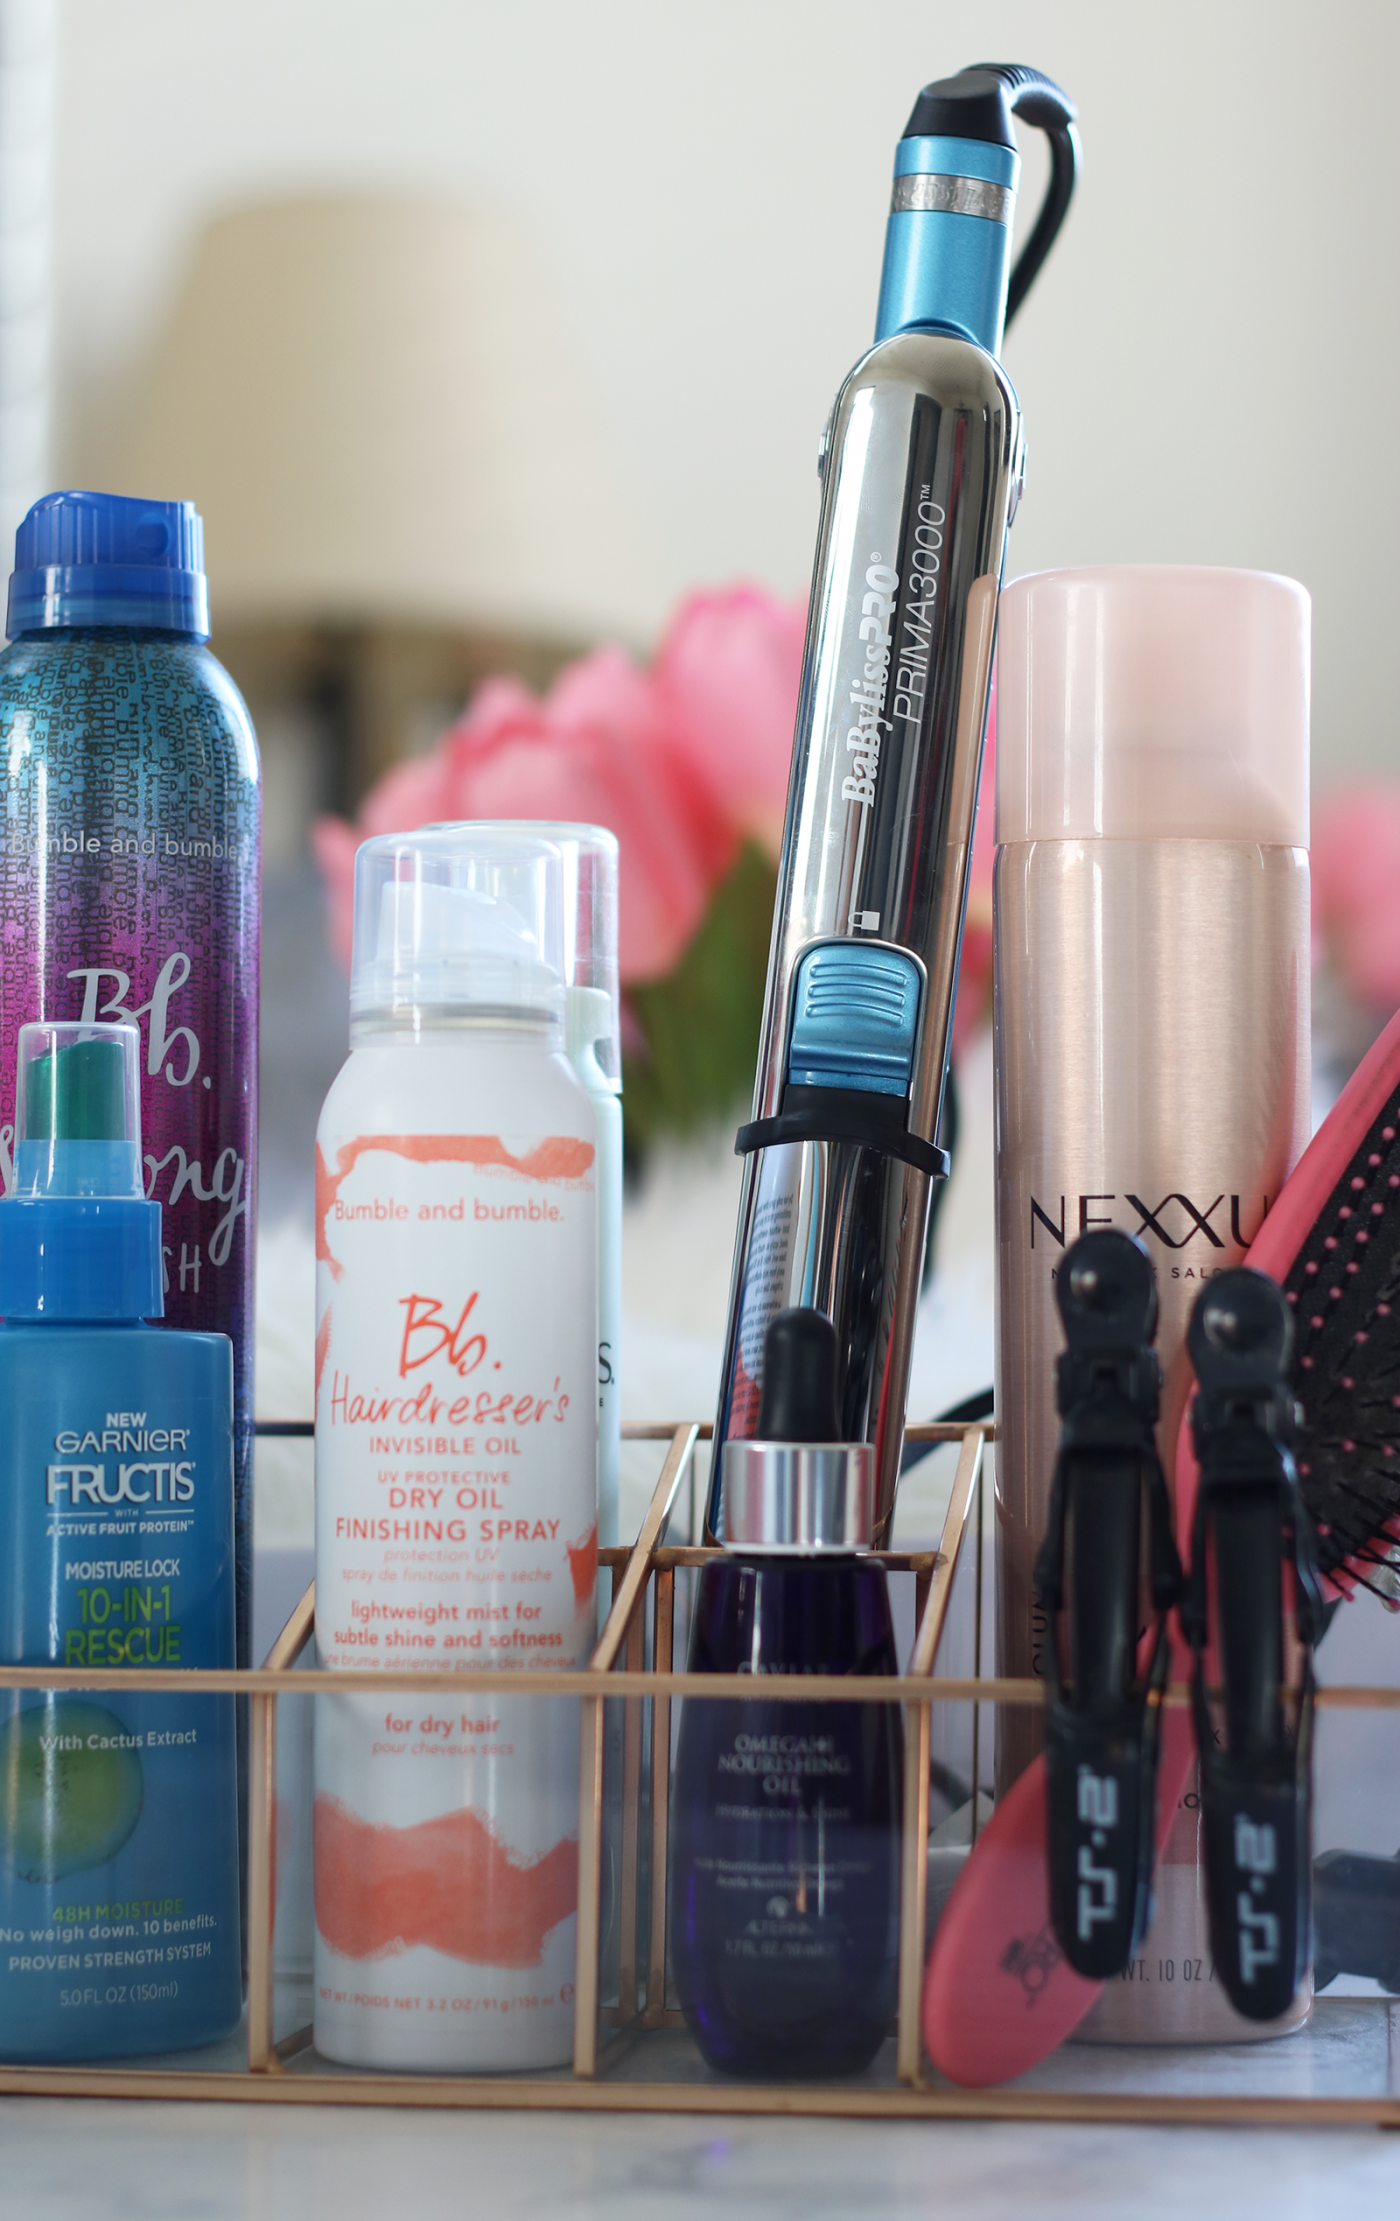 When it comes to flat irons I feel as though I am almost an expert in being a consumer. Always on the hunt for the latest and greatest frizz controlling hair tool to straighten my frizzy hair- I think I finally met my perfect match thanks to Loxa Beauty- Frizz Fighting- Frizz Control- Frizz Fighting Hair Tool